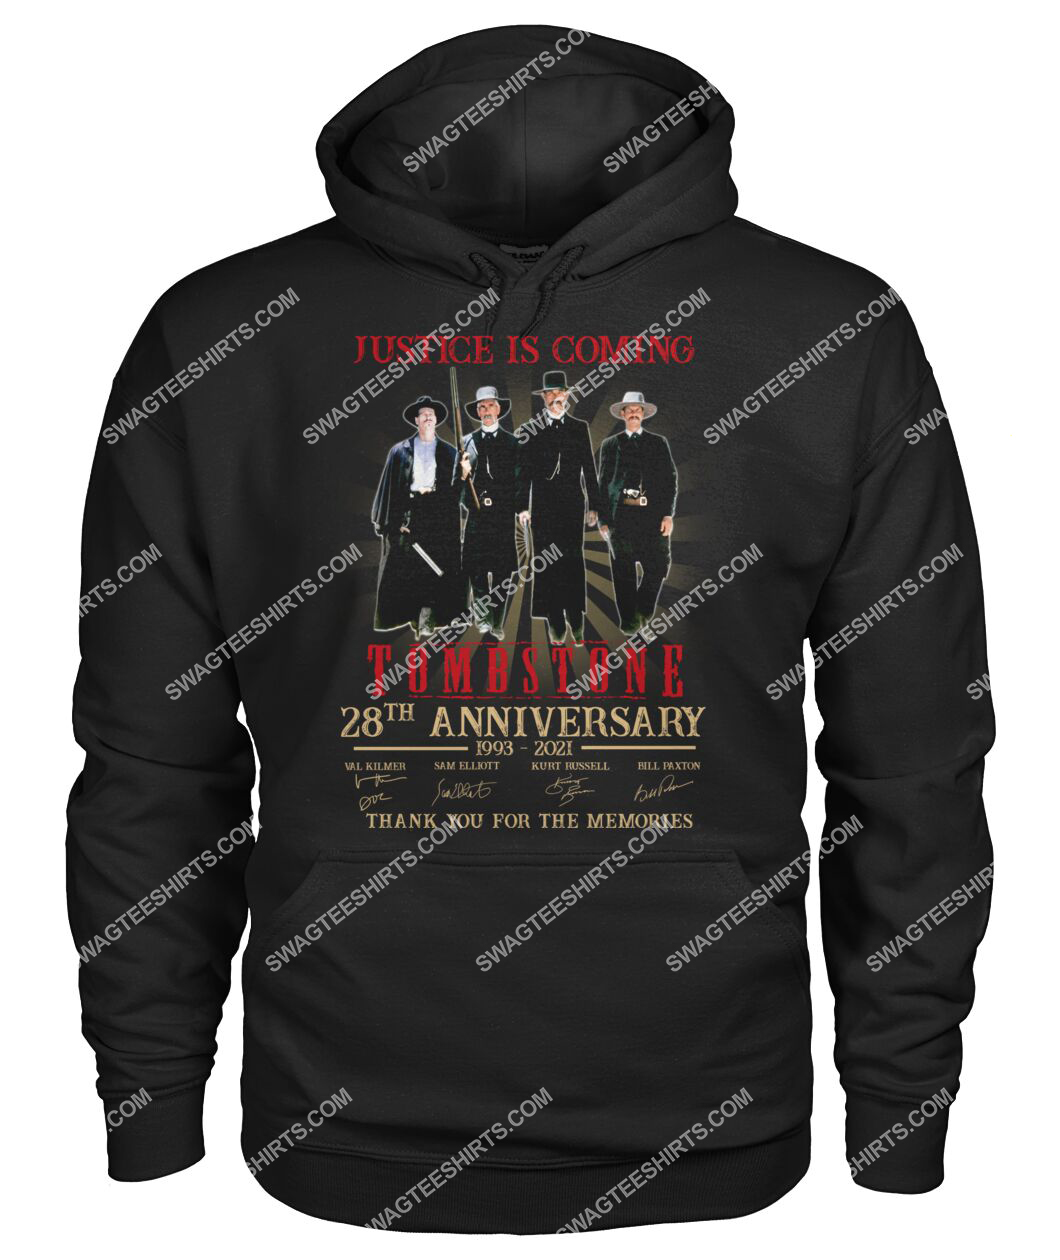 justice is coming tombstone 28th anniversary thank you for the memories hoodie 1